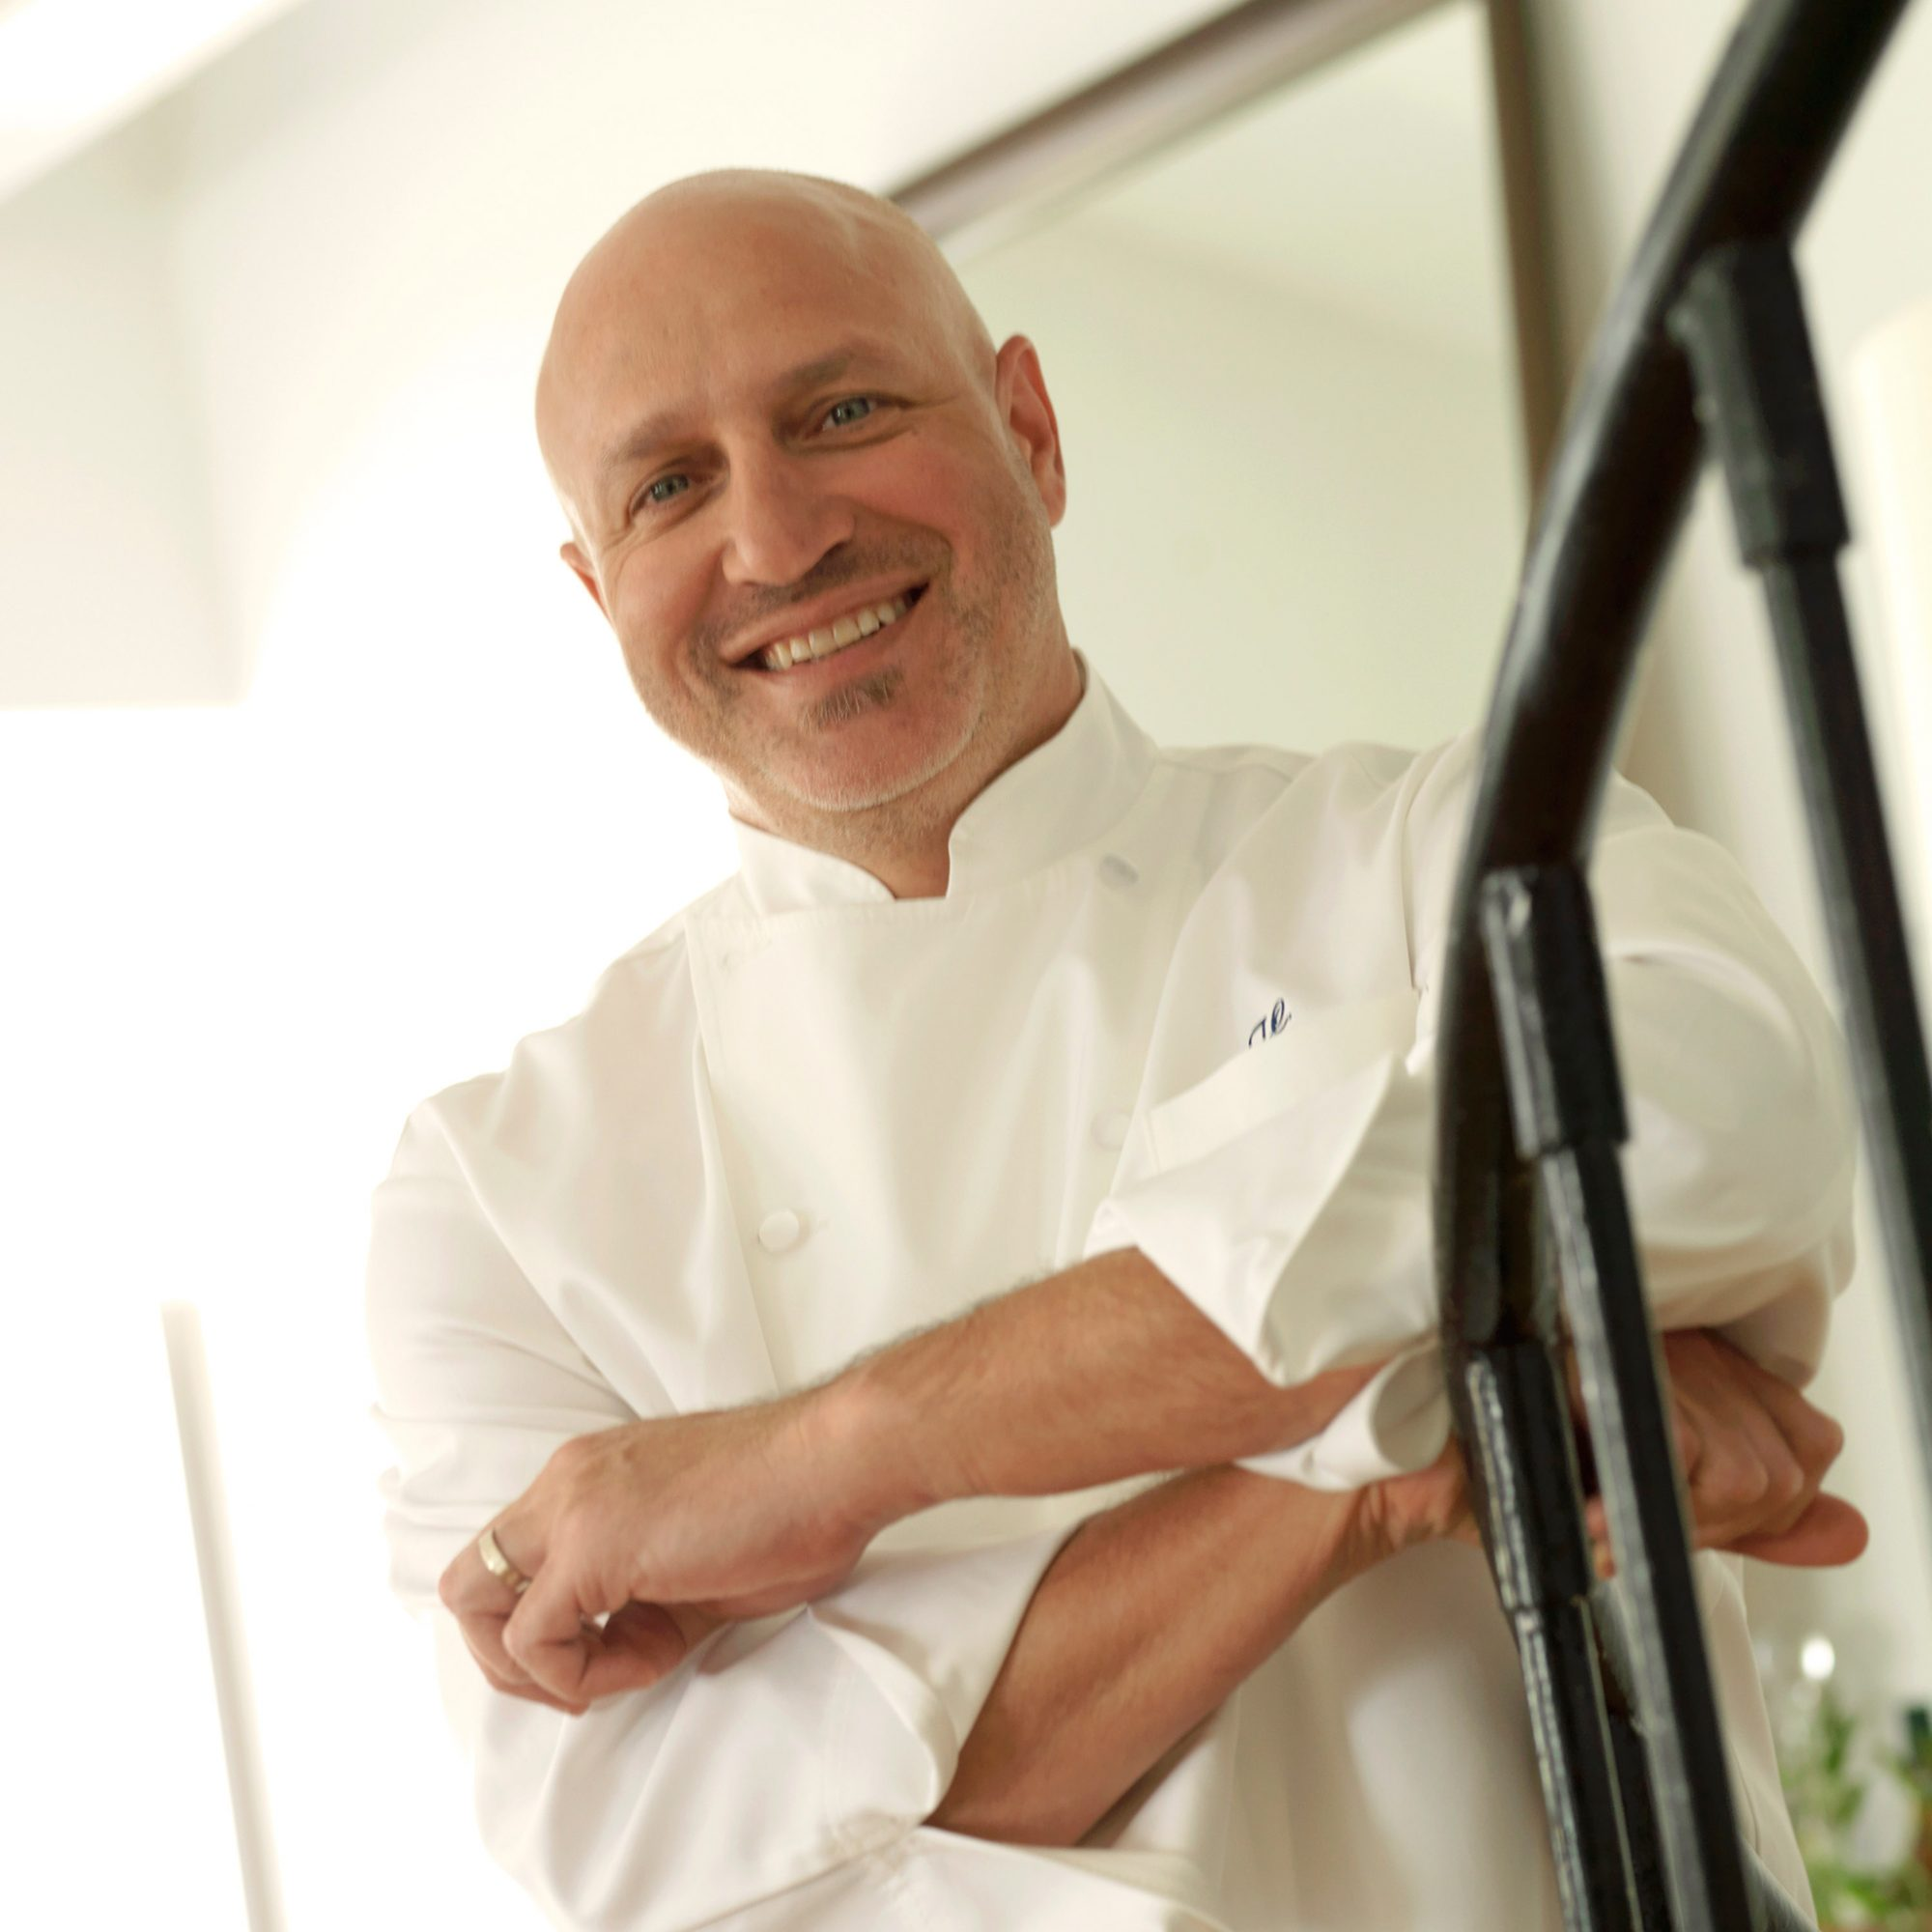 Tom Colicchio Used to Cook Without a Shirt During His First Kitchen Job